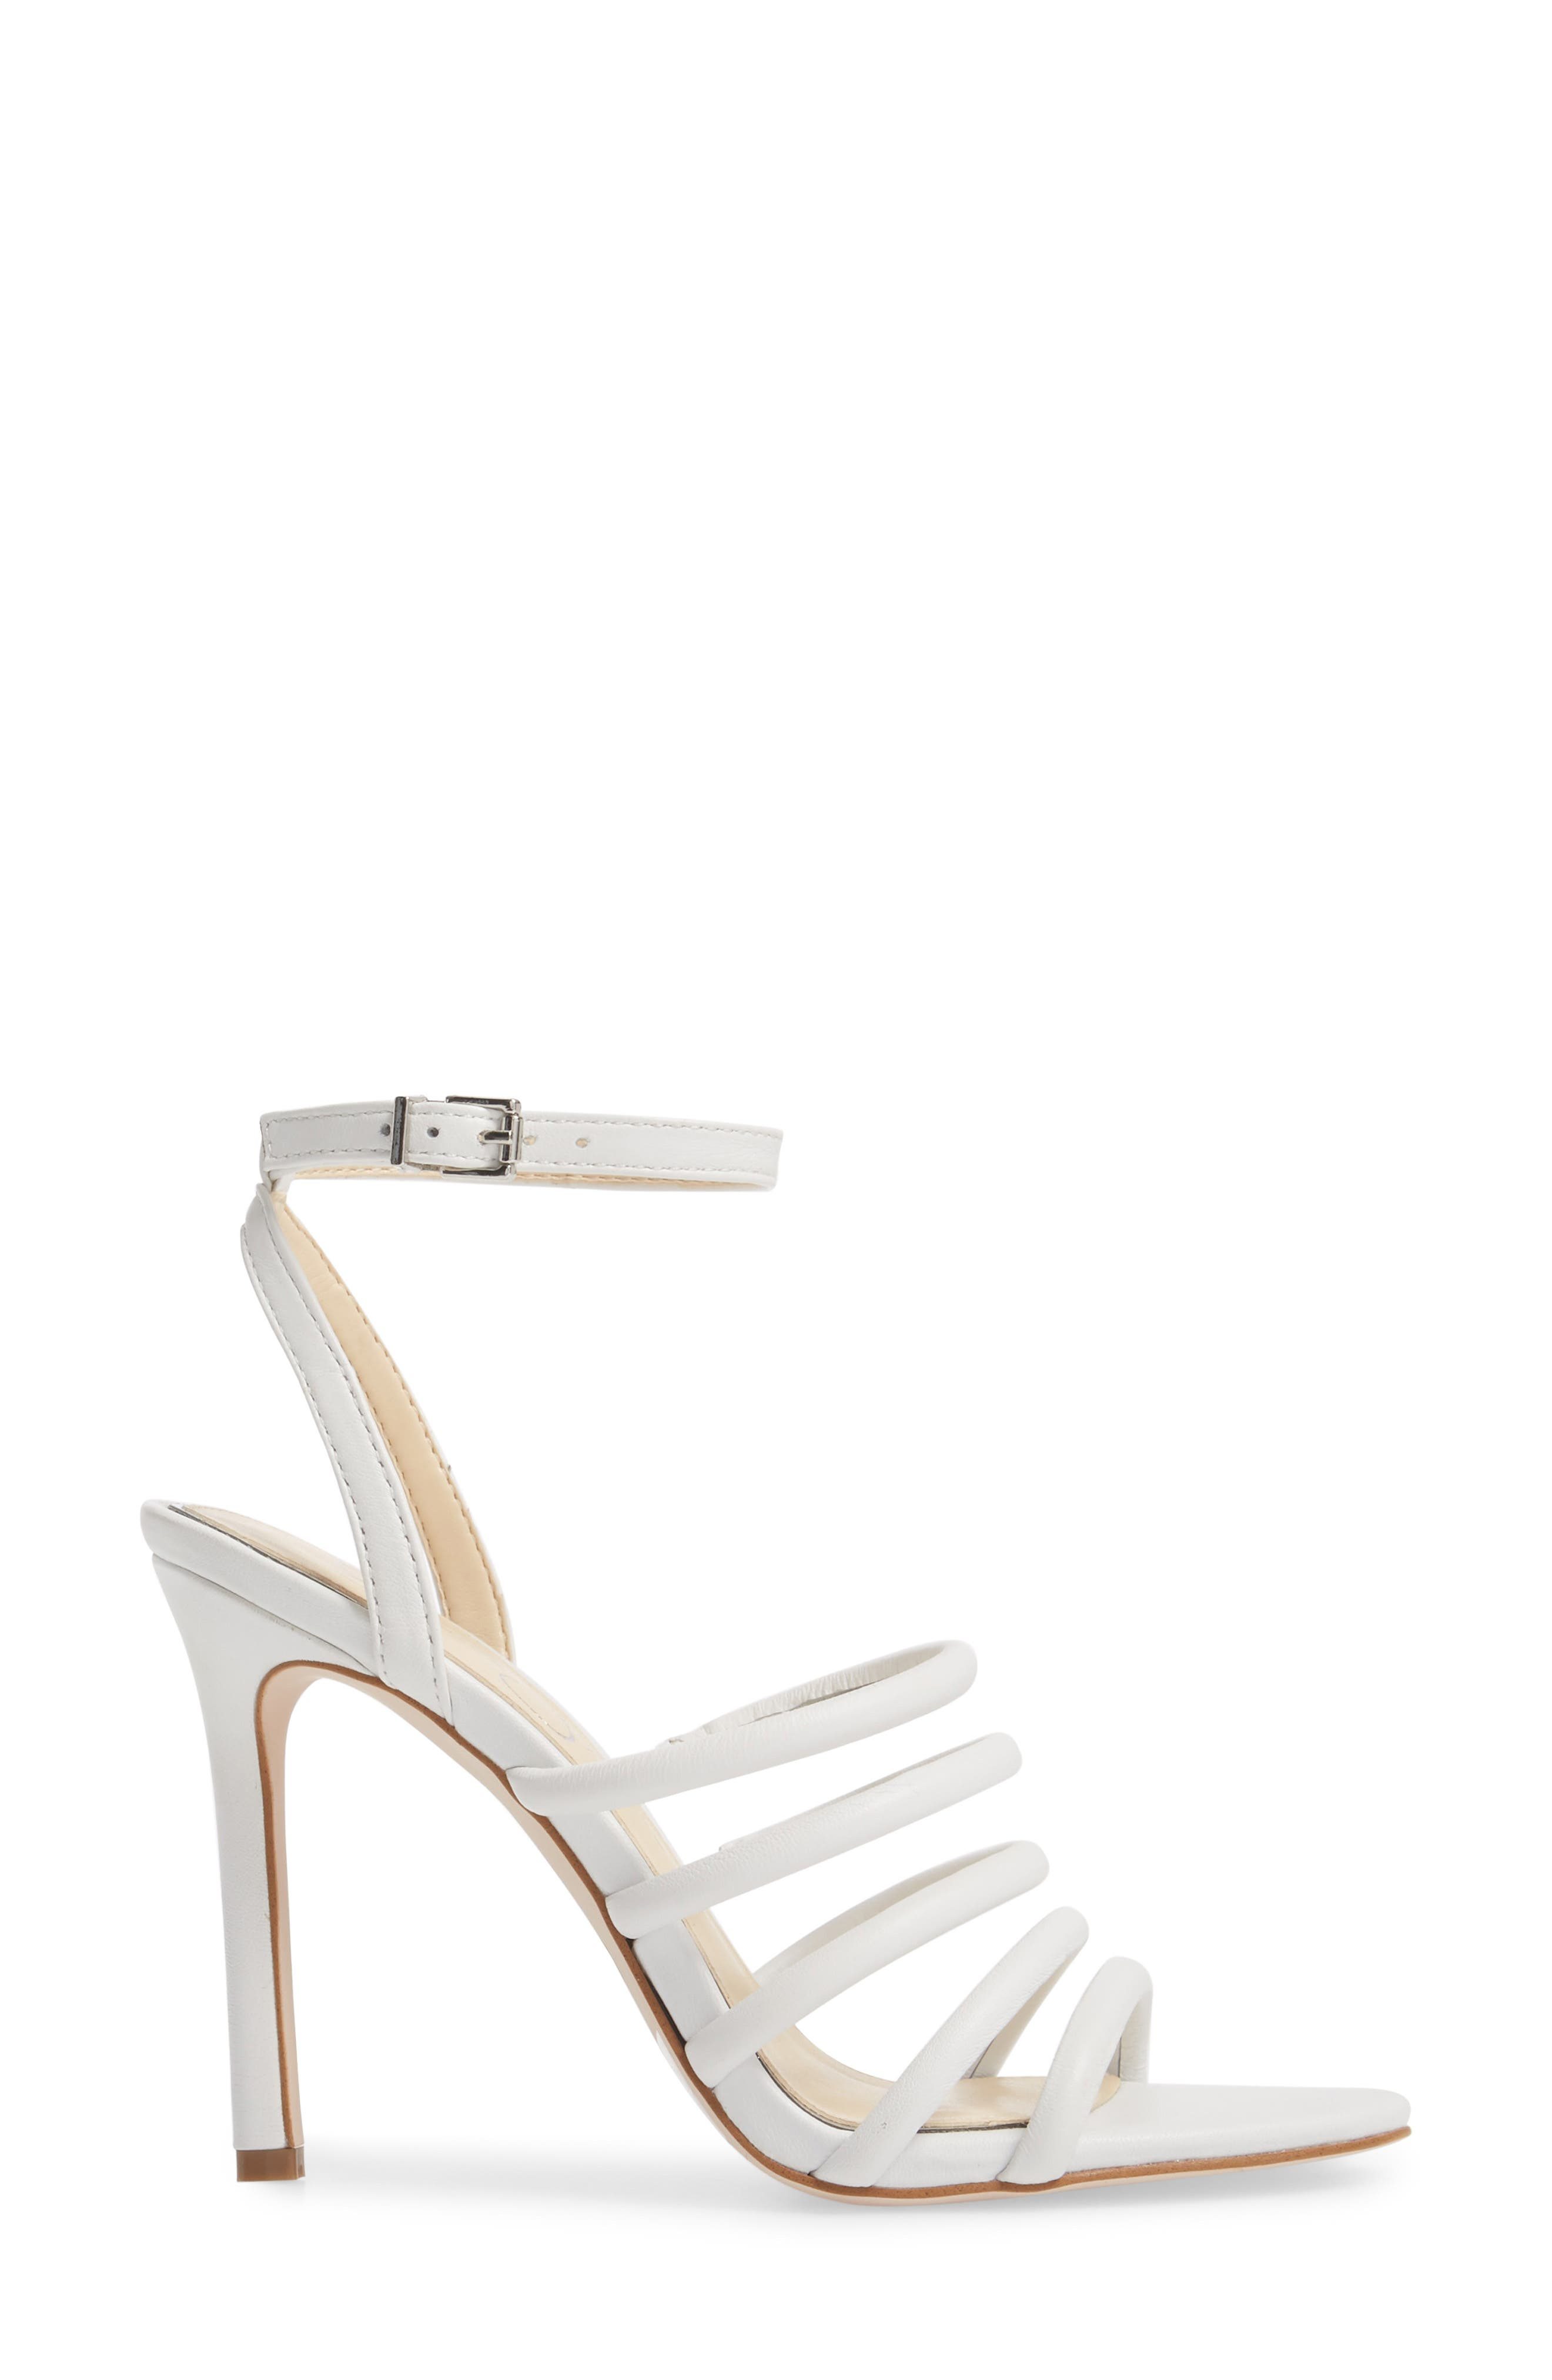 Joselle Strappy Sandal,                             Alternate thumbnail 8, color,